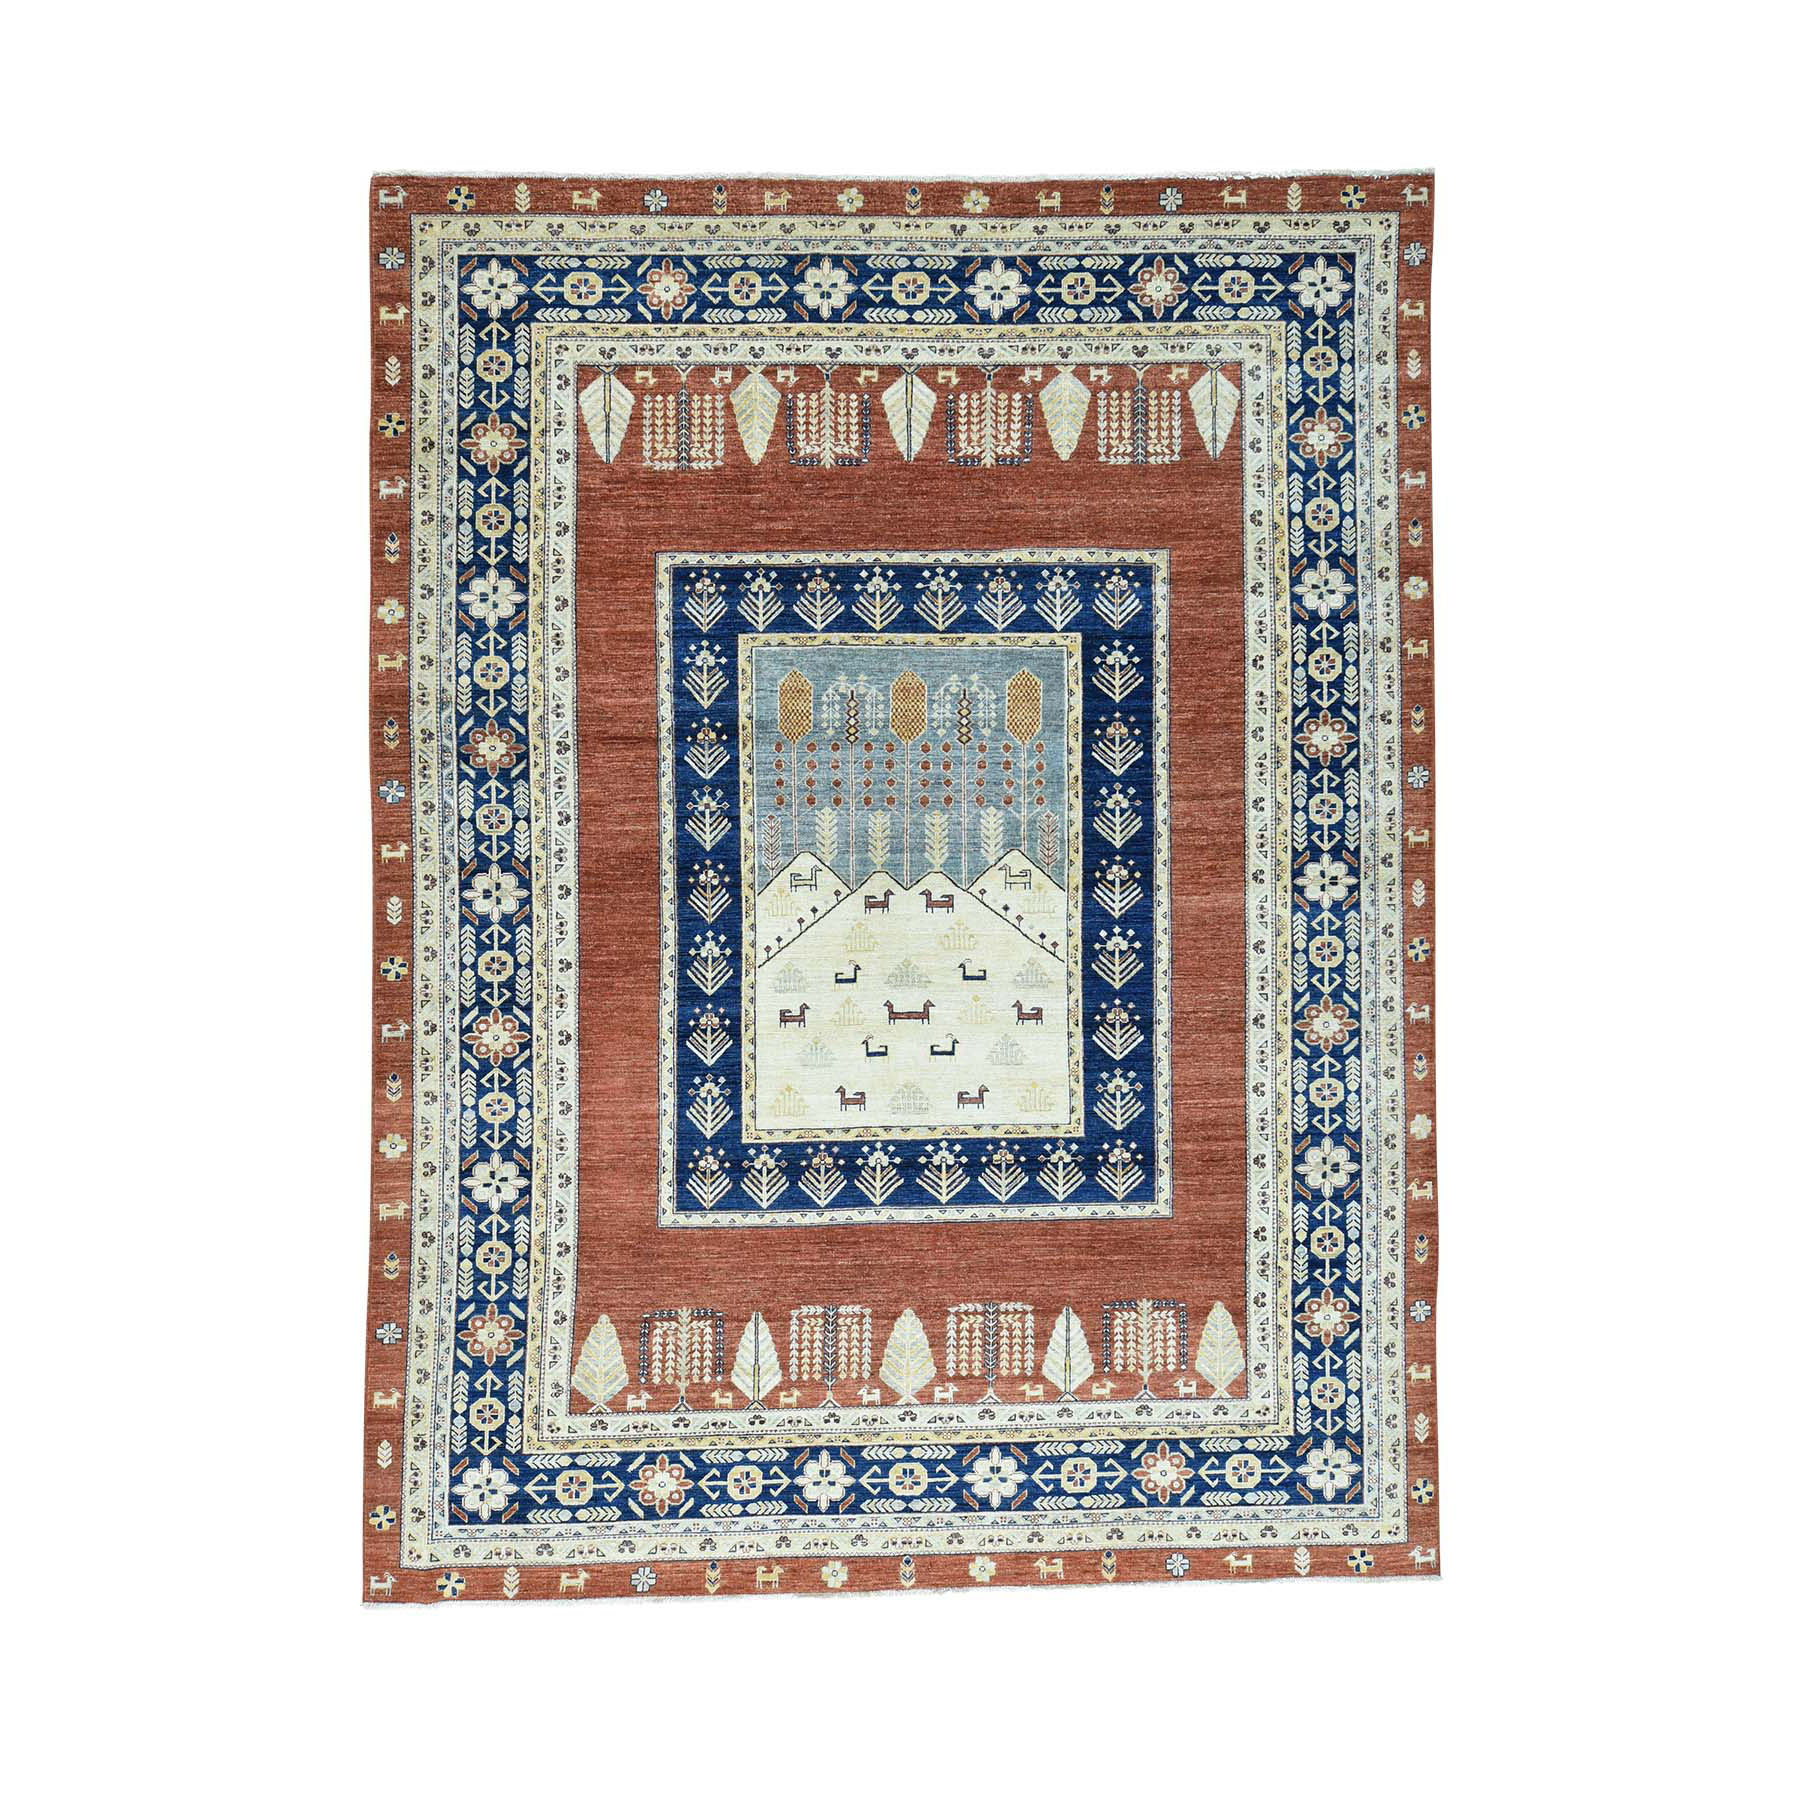 9'x12' Pictorial Tree Design Pure Wool Hand Woven Peshawar Rug